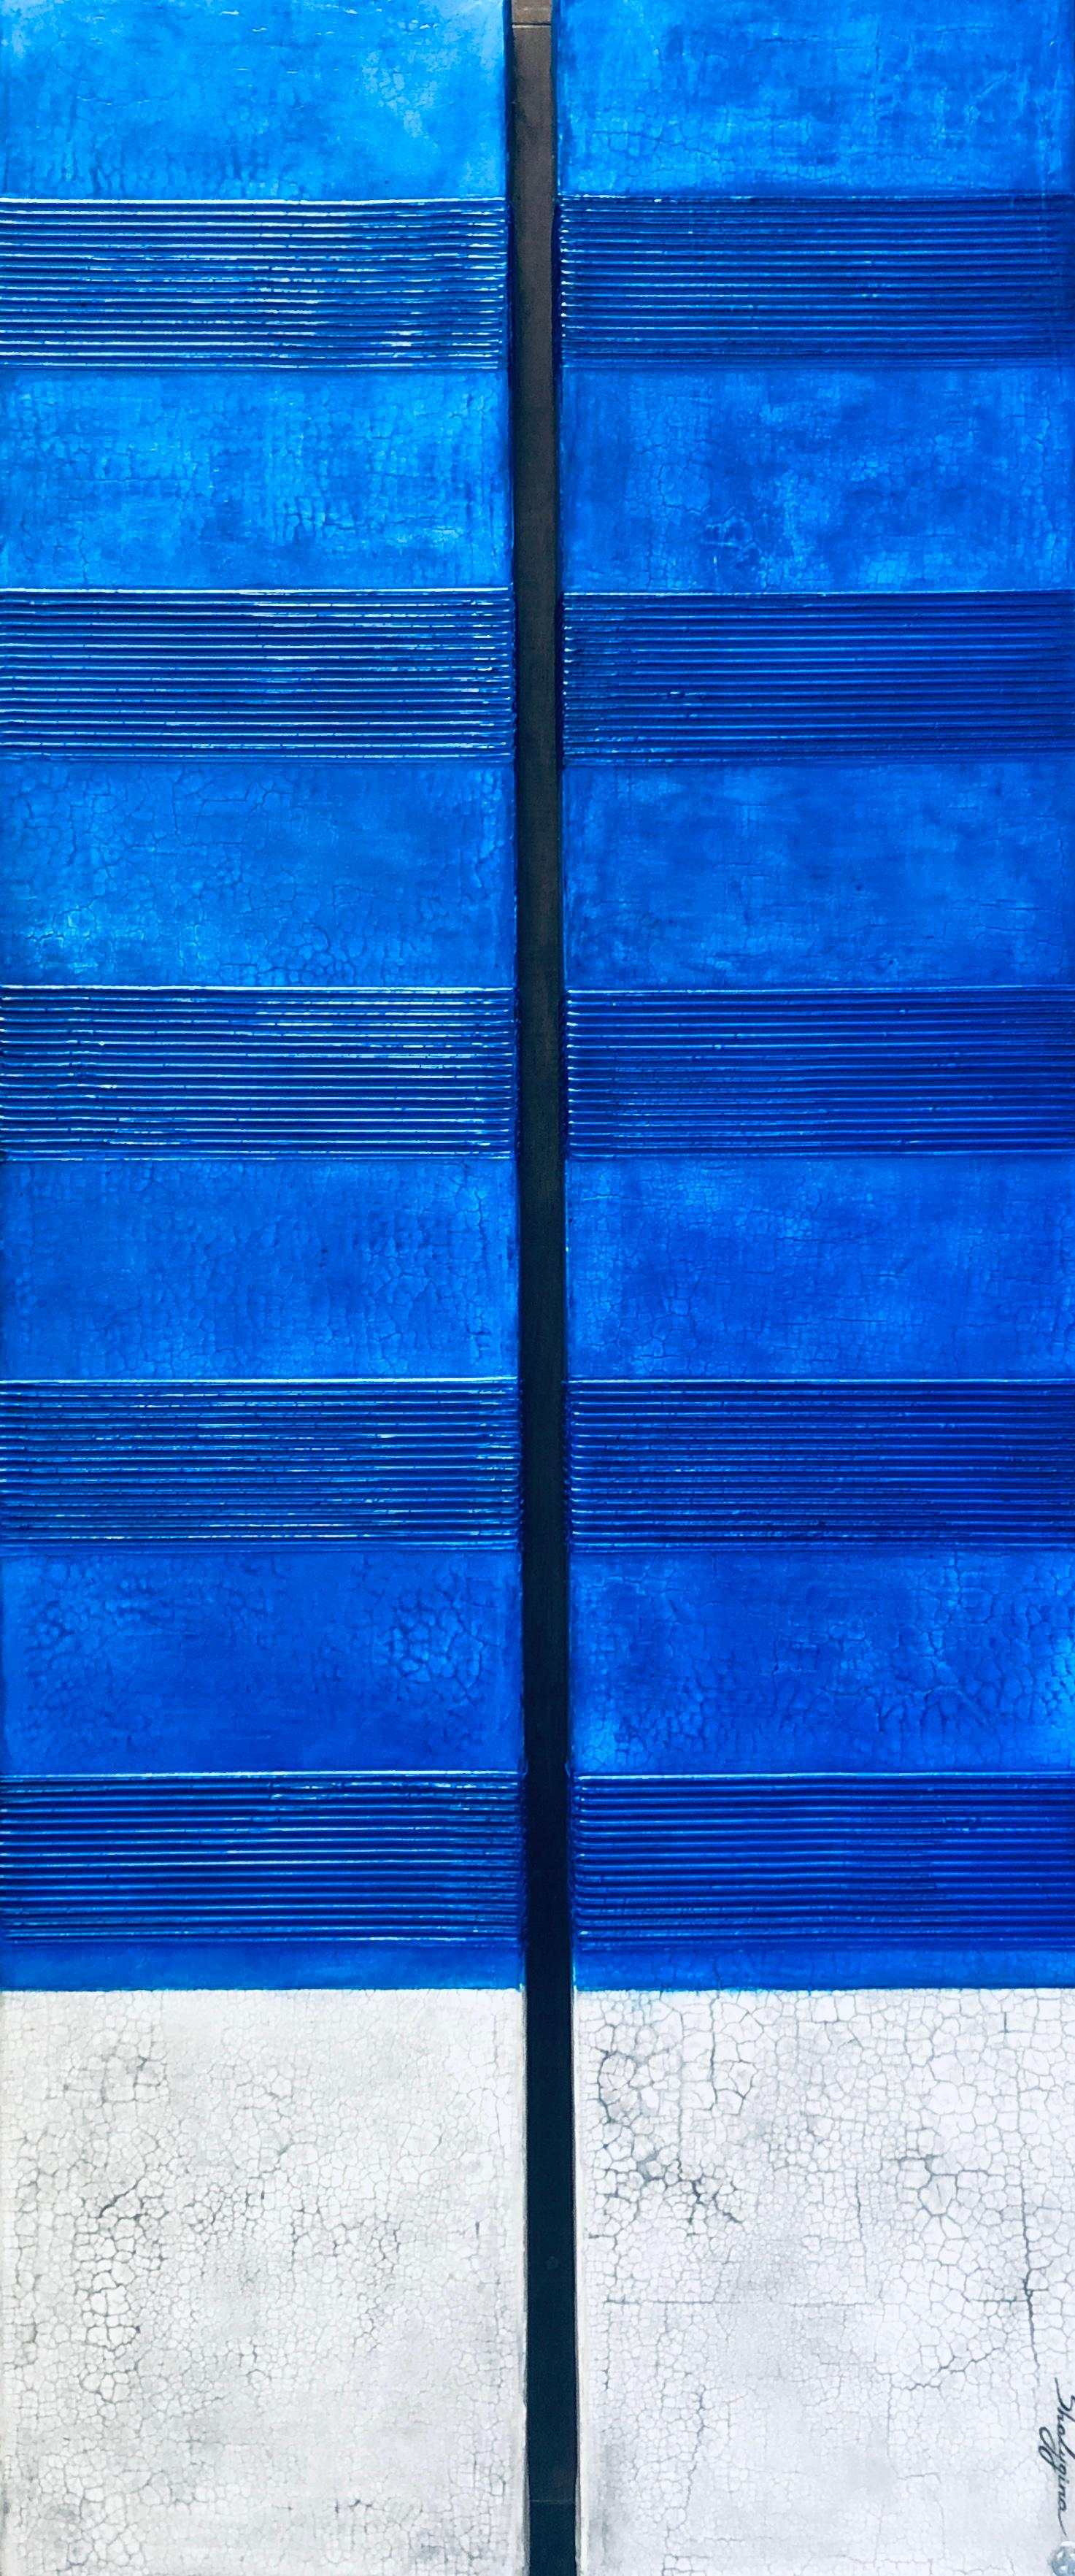 """Blue White Abstract Contemporary Minimalist Textural Mixed Media 60""""x24"""" Diptych"""